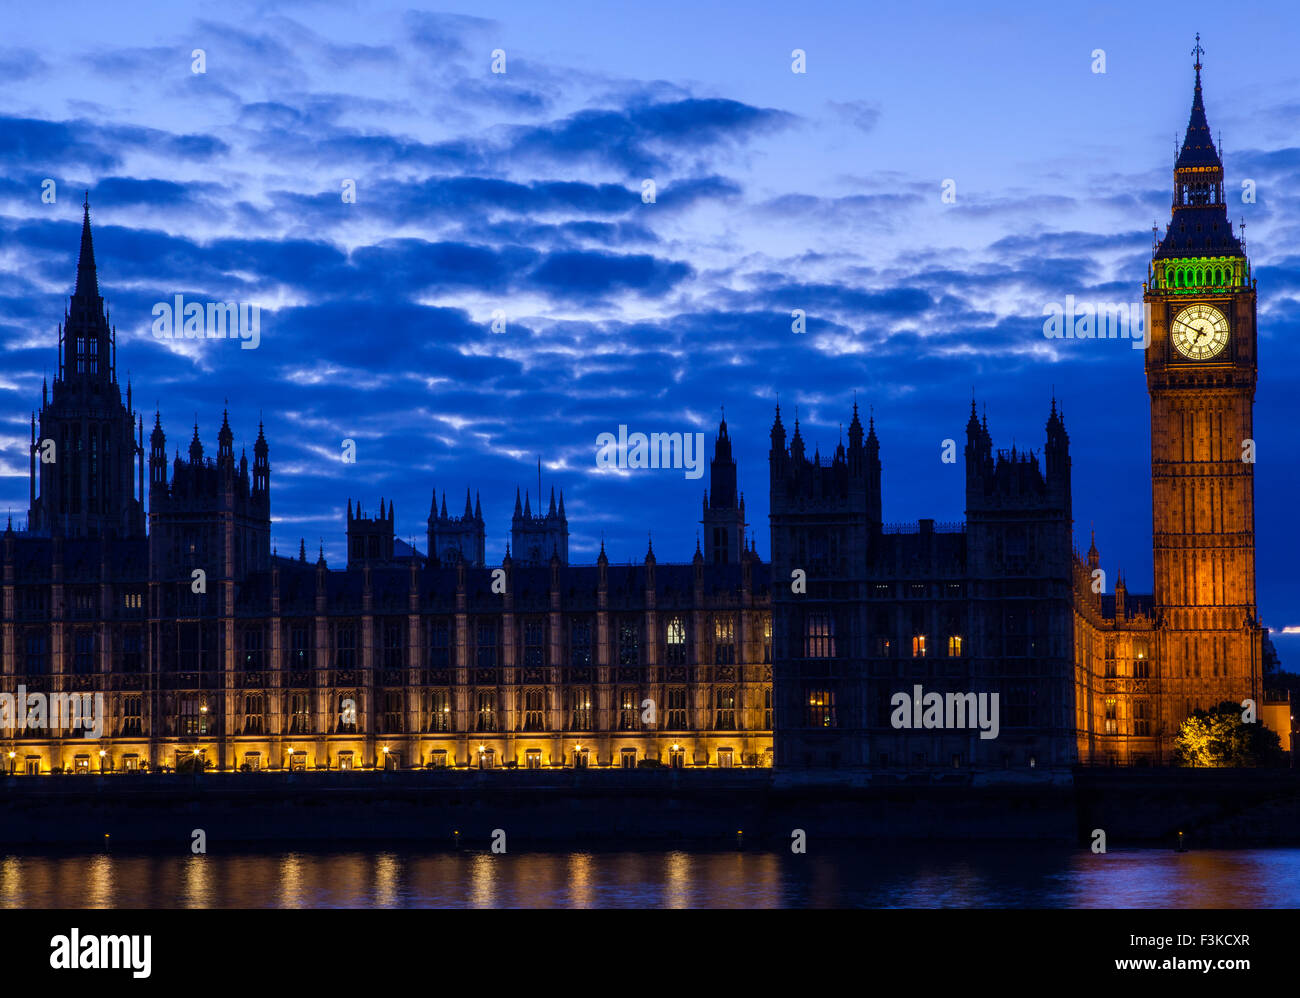 A view across the River Thames of the Houses of Parliament in London. - Stock Image